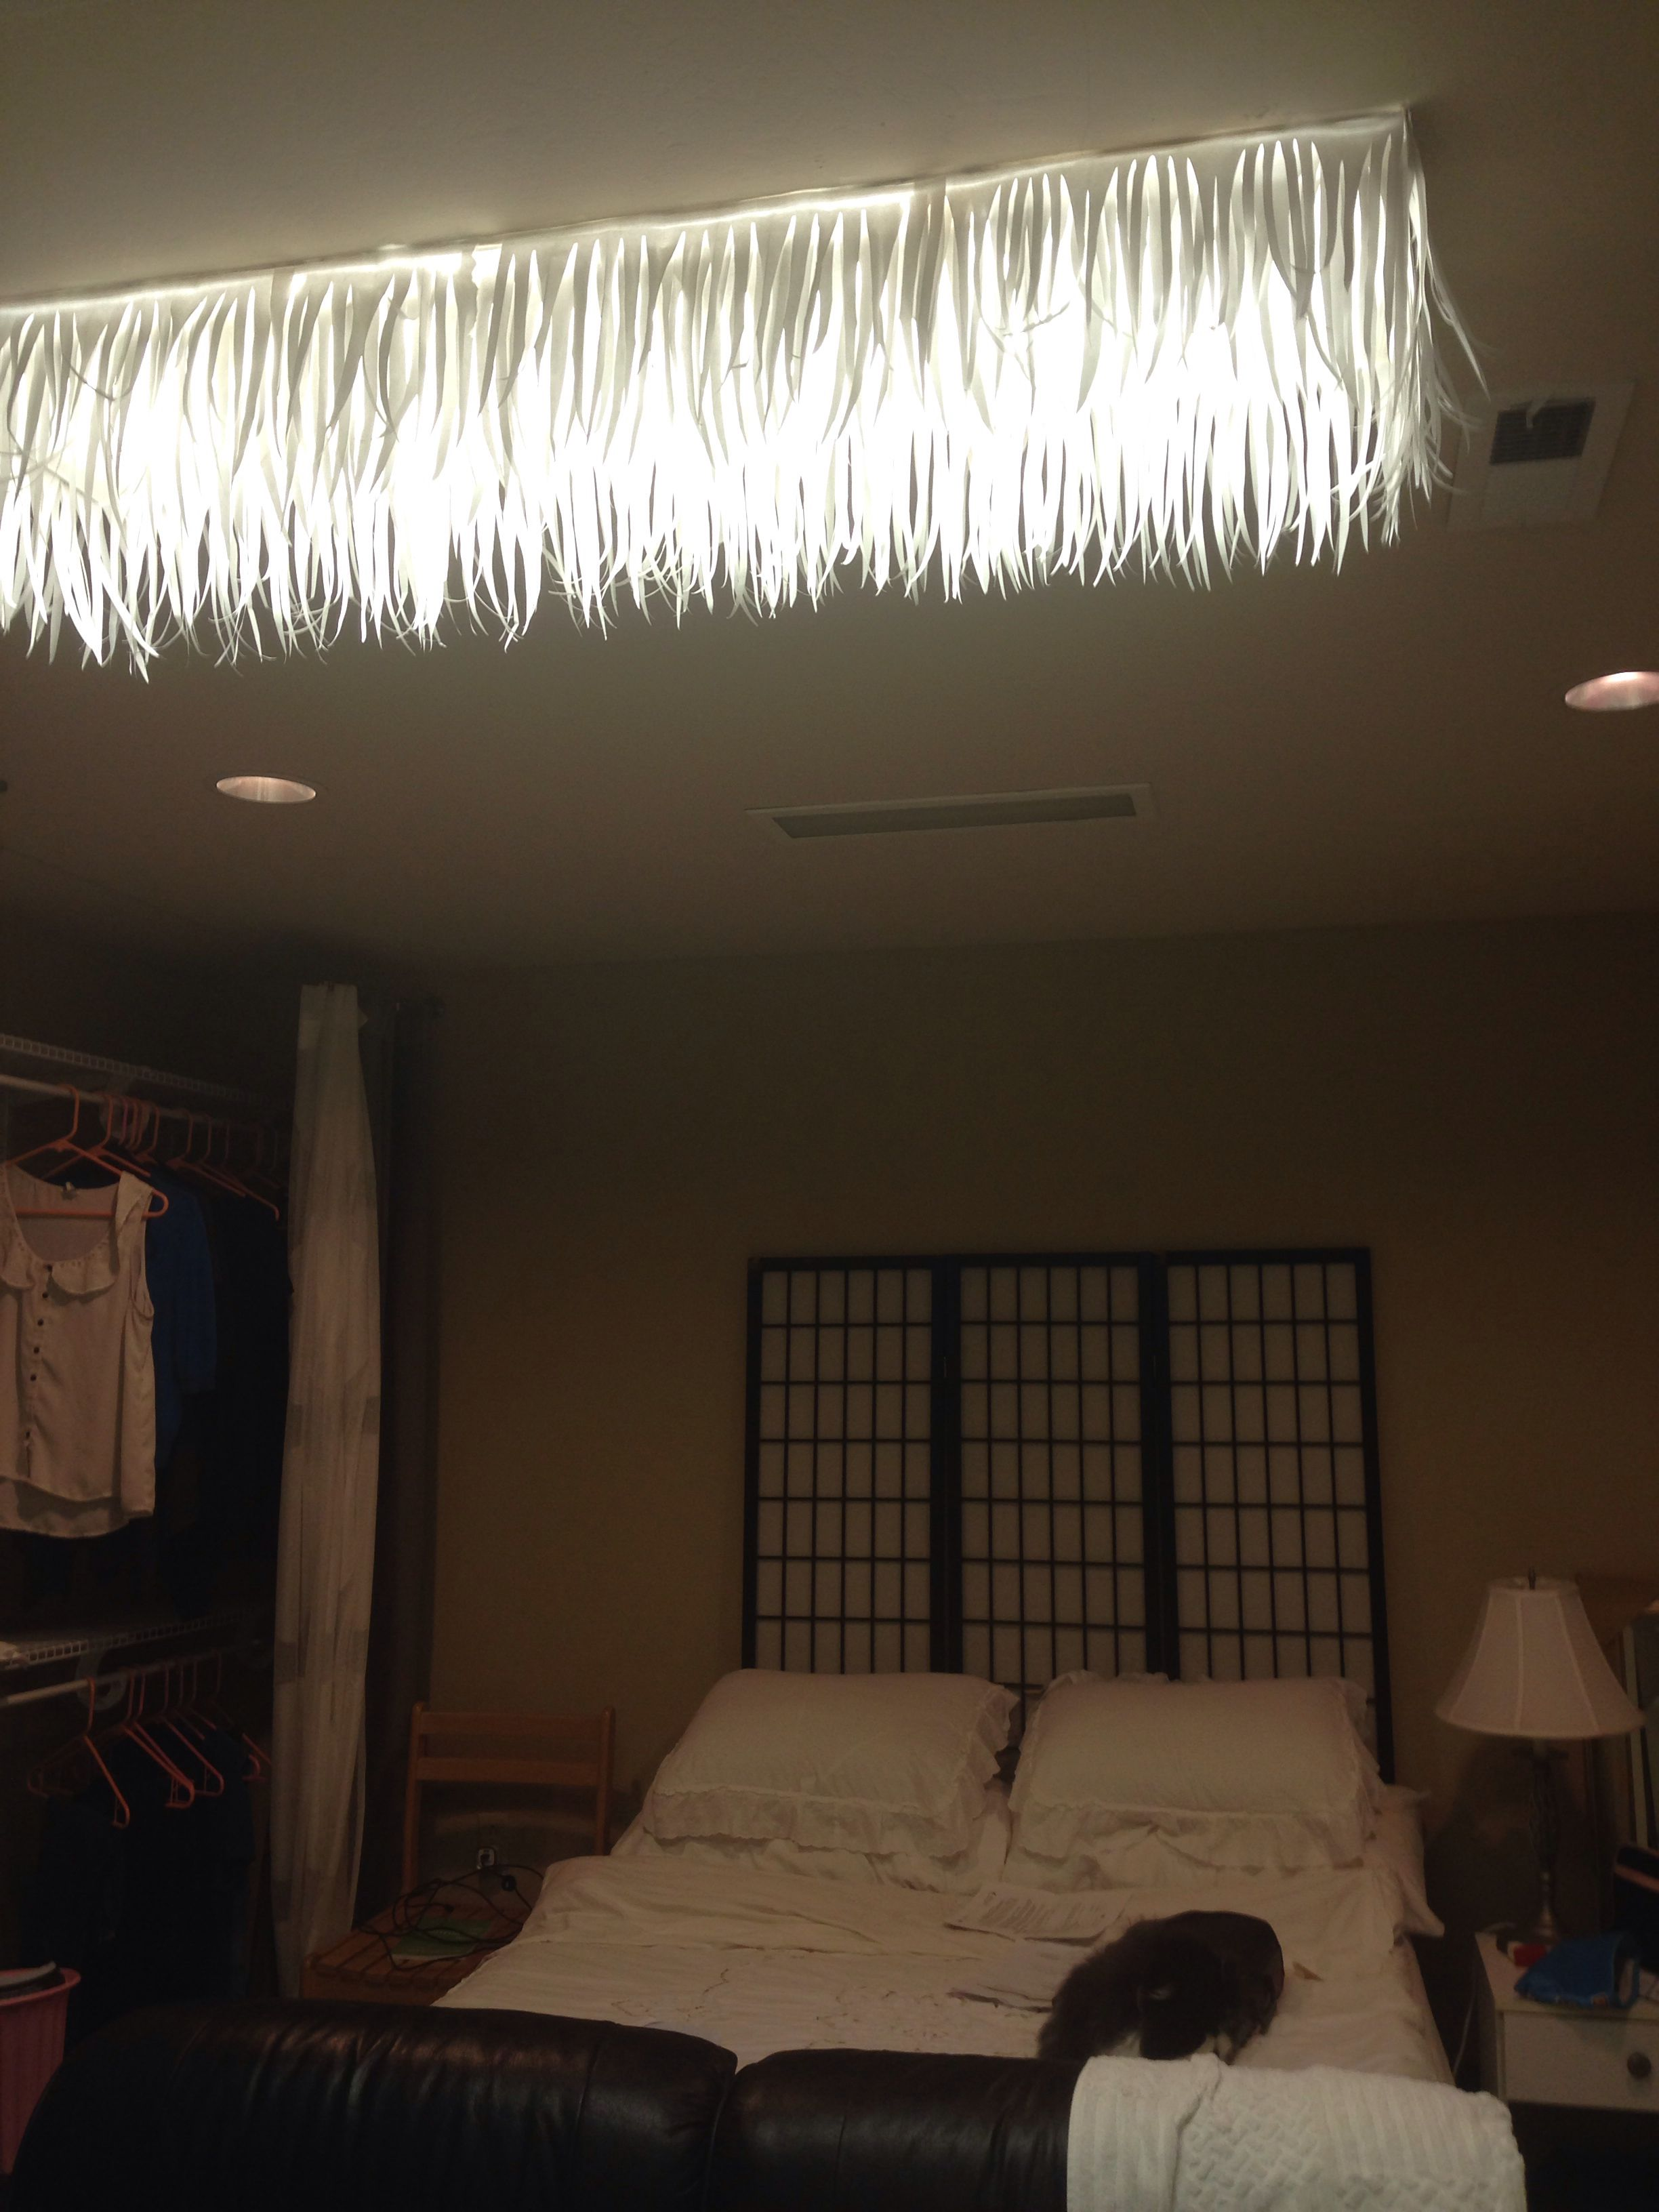 fluorescent light fixtures living room very small ideas covered ugly diy with just printer paper cut in strips